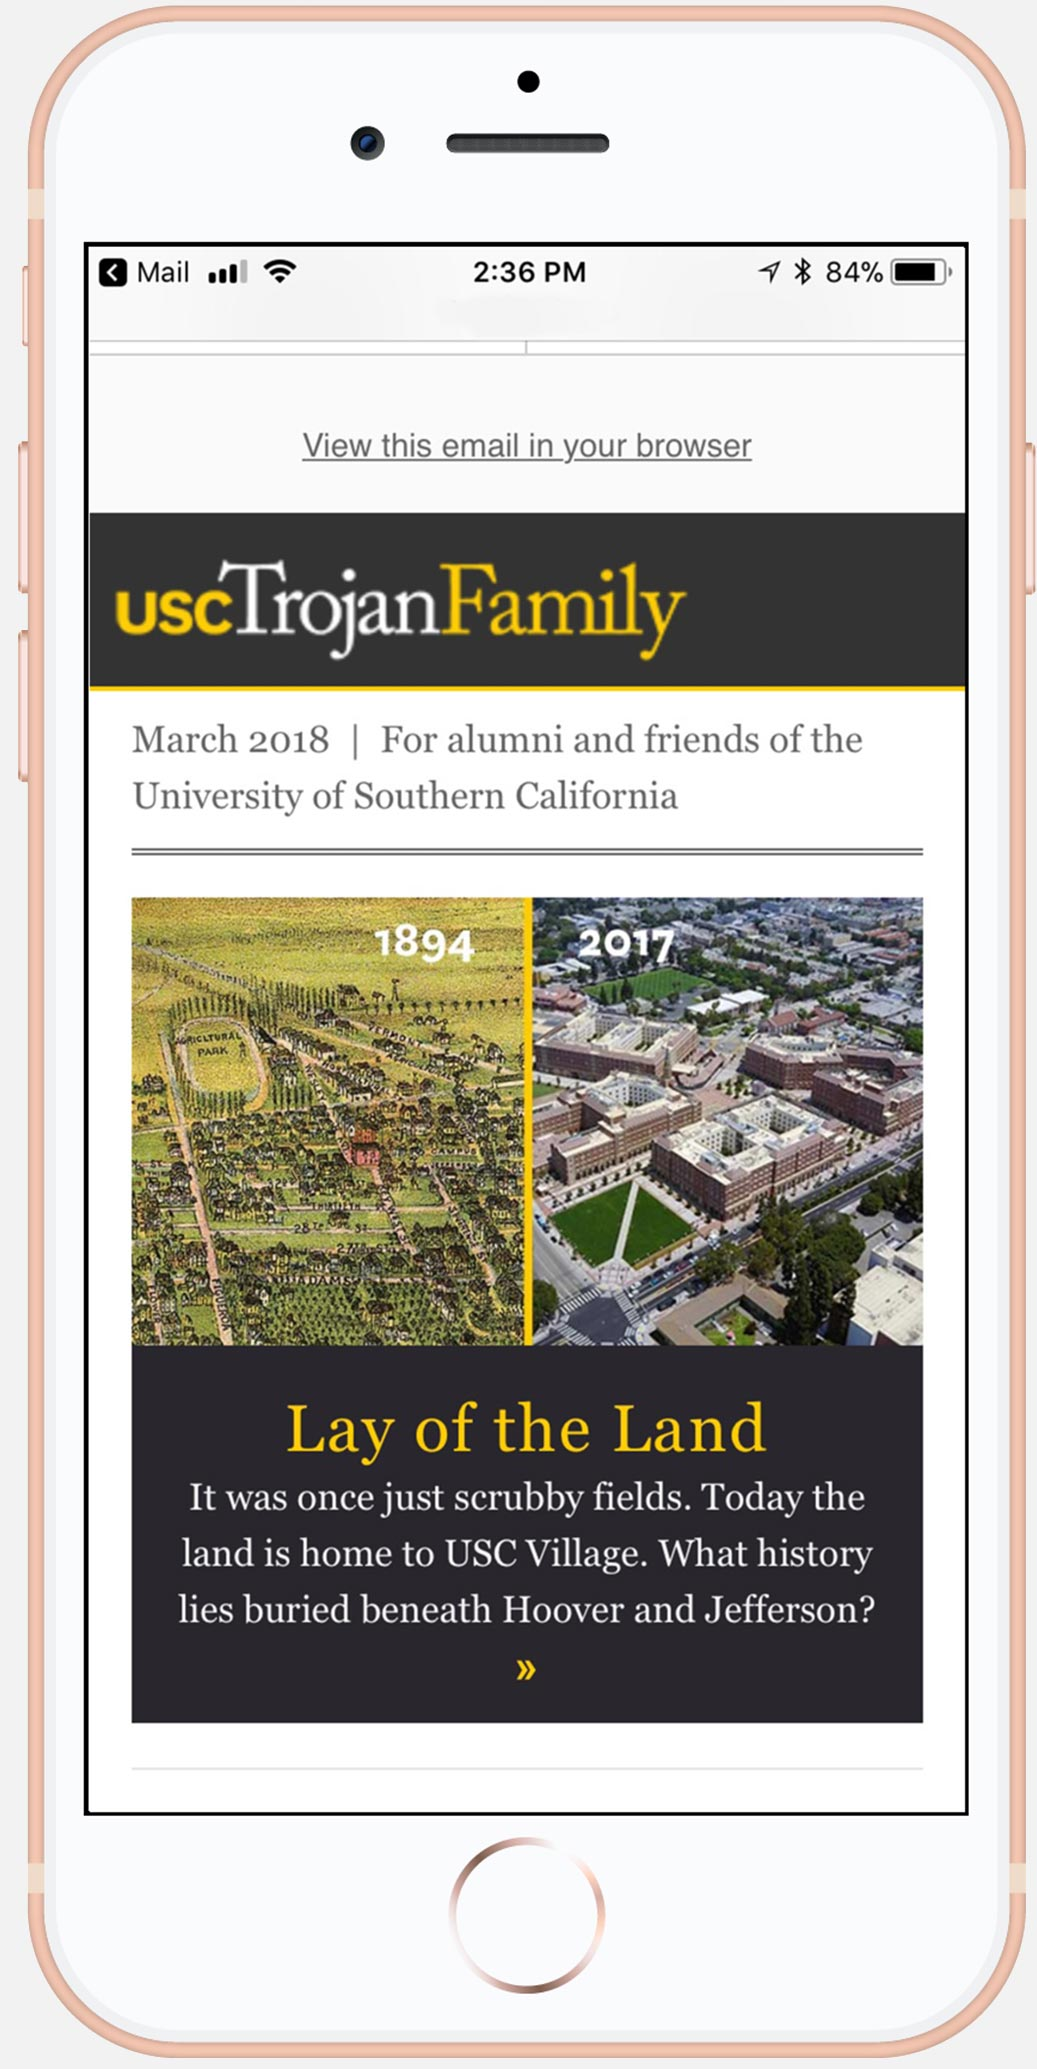 USC Trojan Family Magazine newsletter